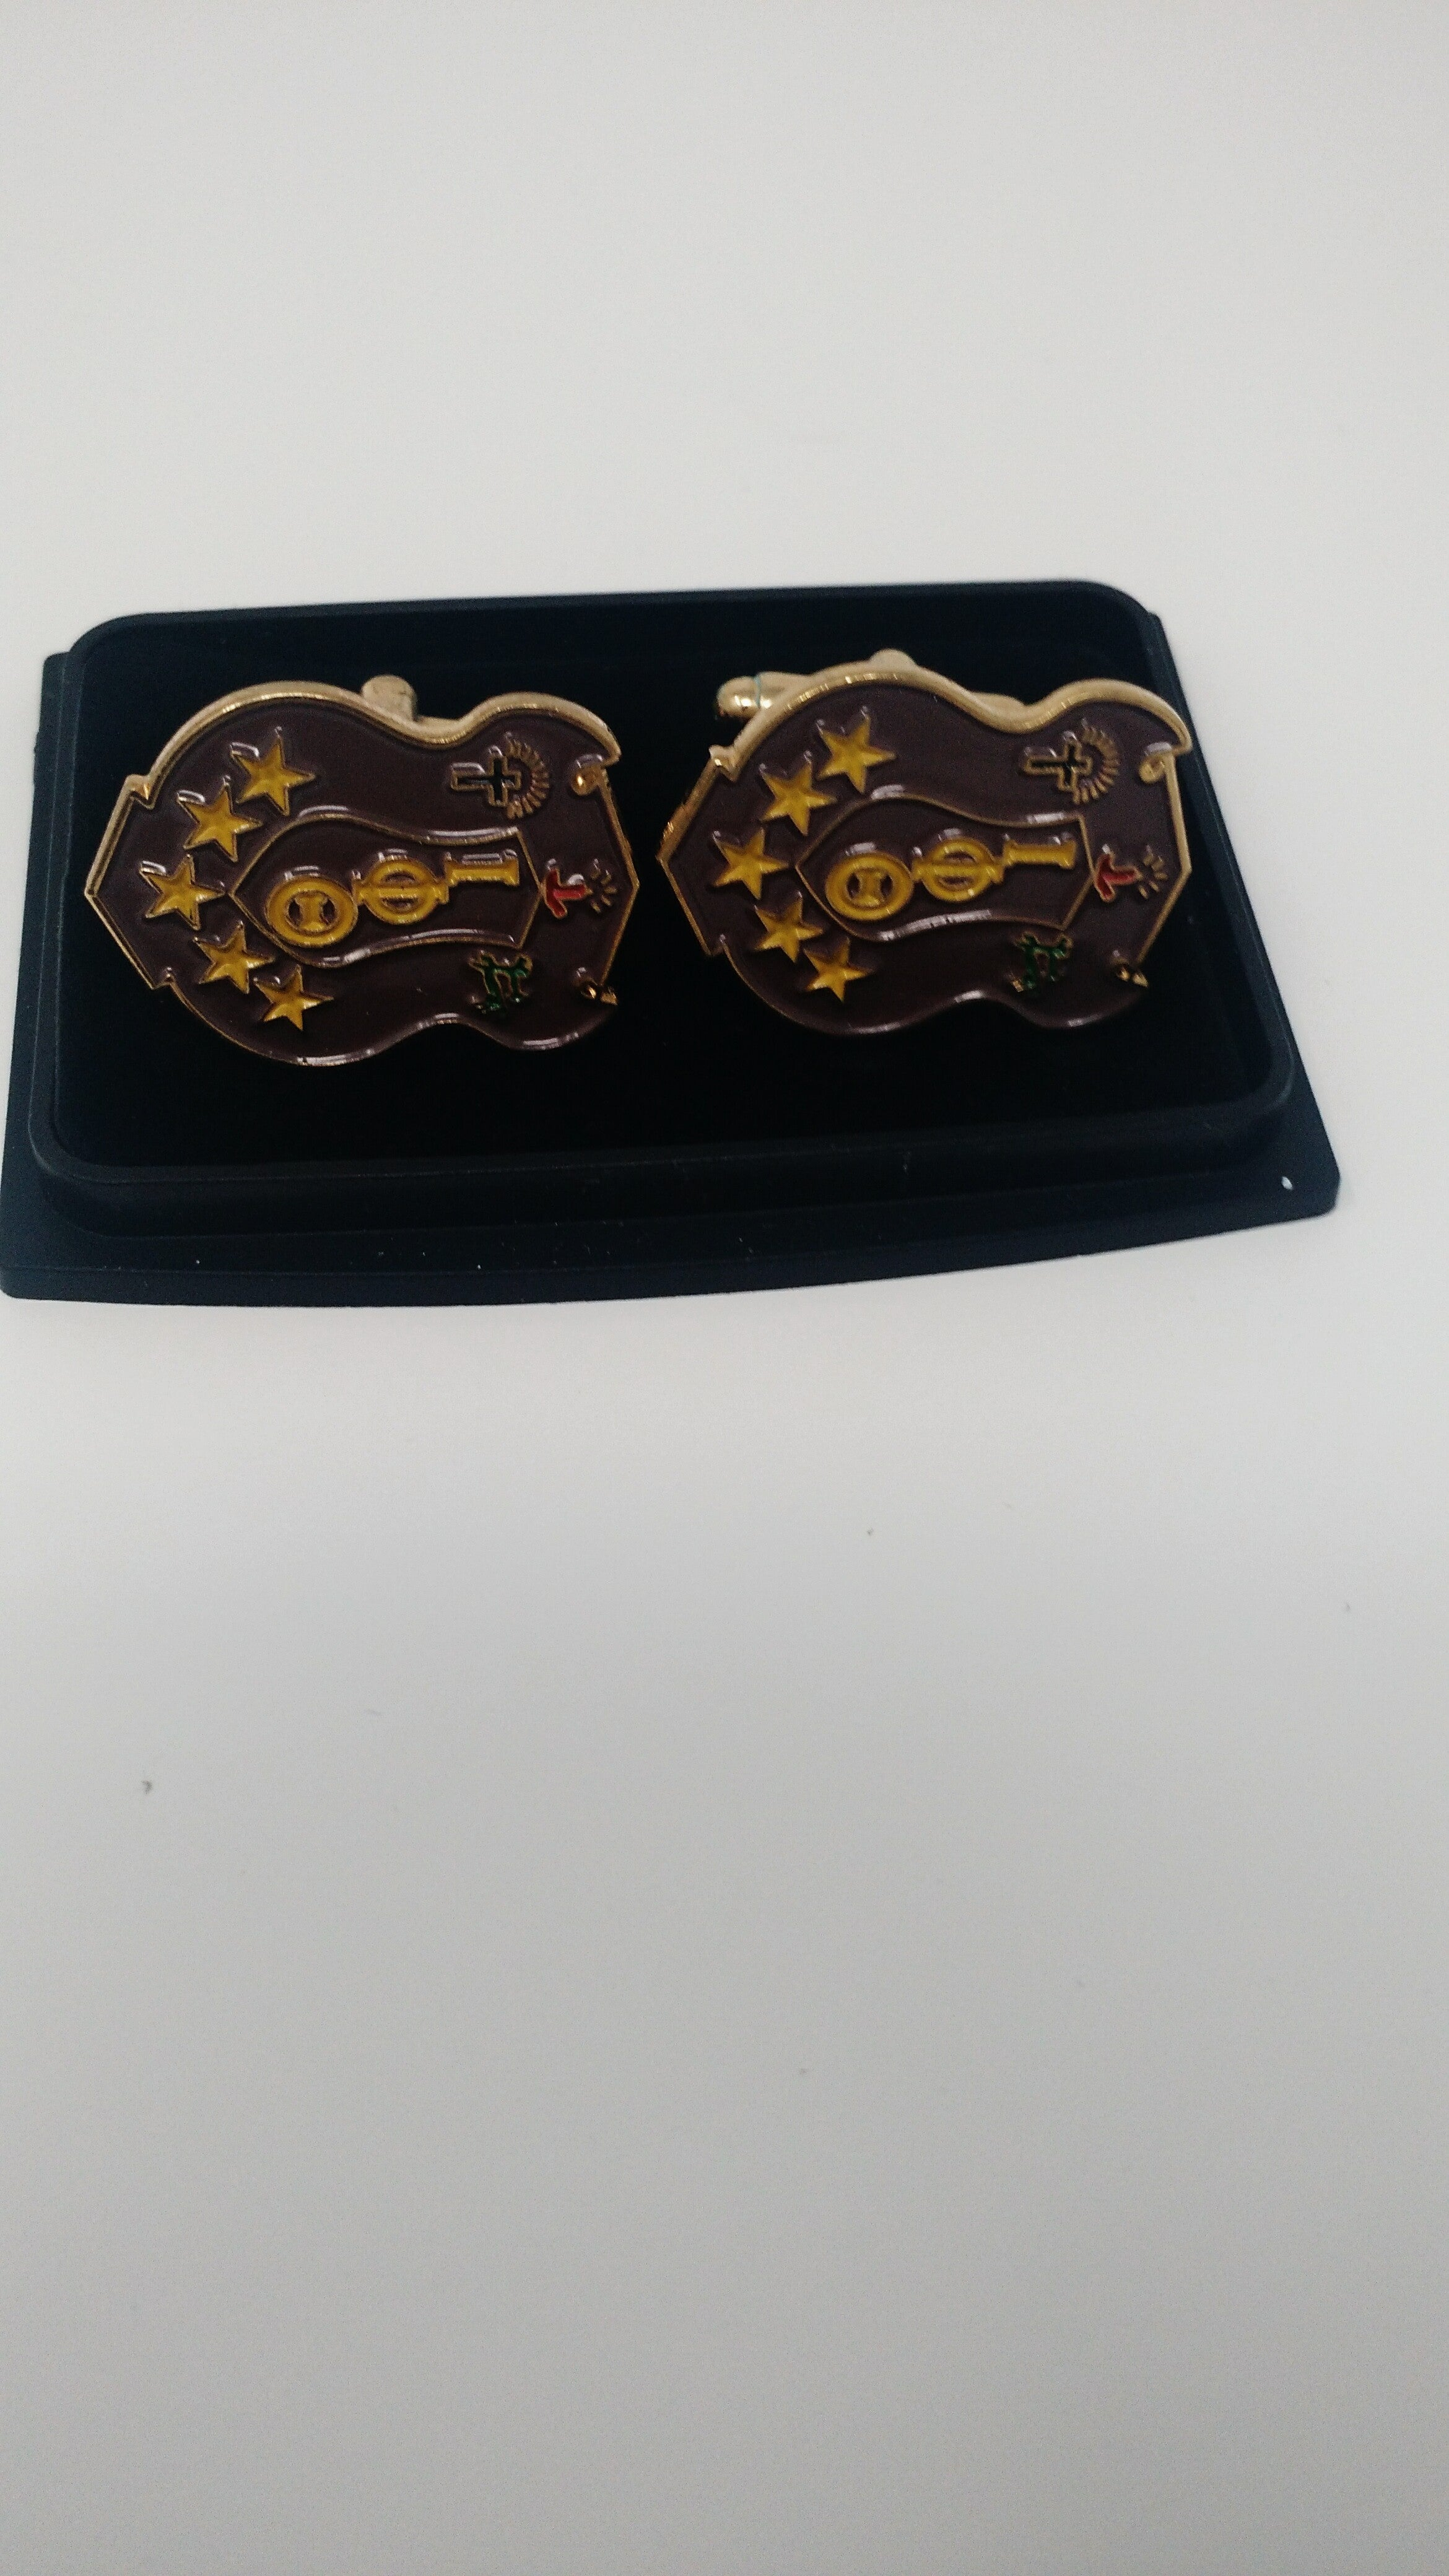 Iota Phi Theta Shield Cuff Links